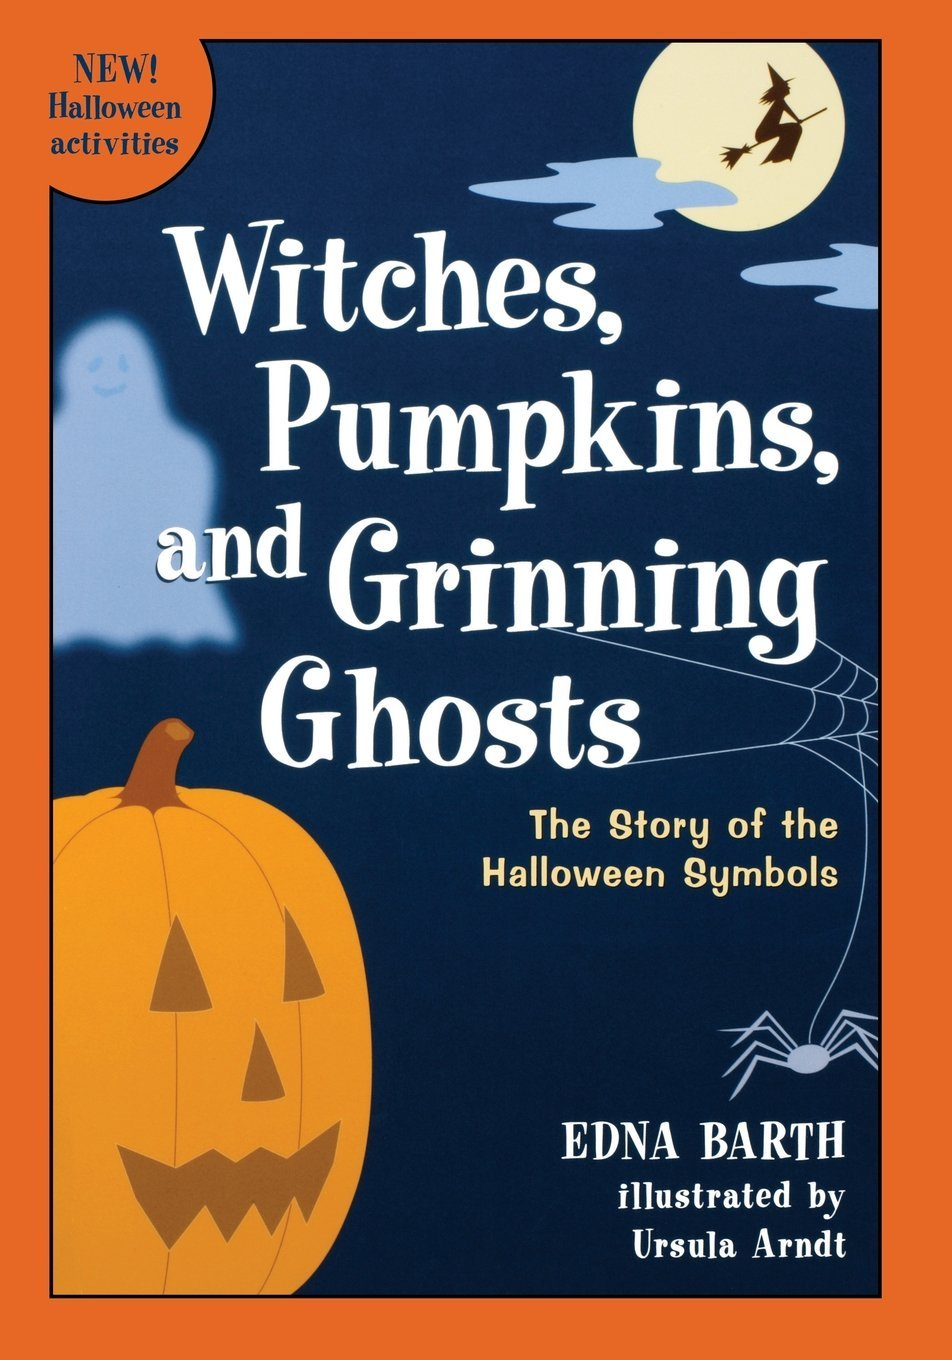 The Ultimate Halloween Reading Guide for Kids of All Ages 16 Daily Mom Parents Portal